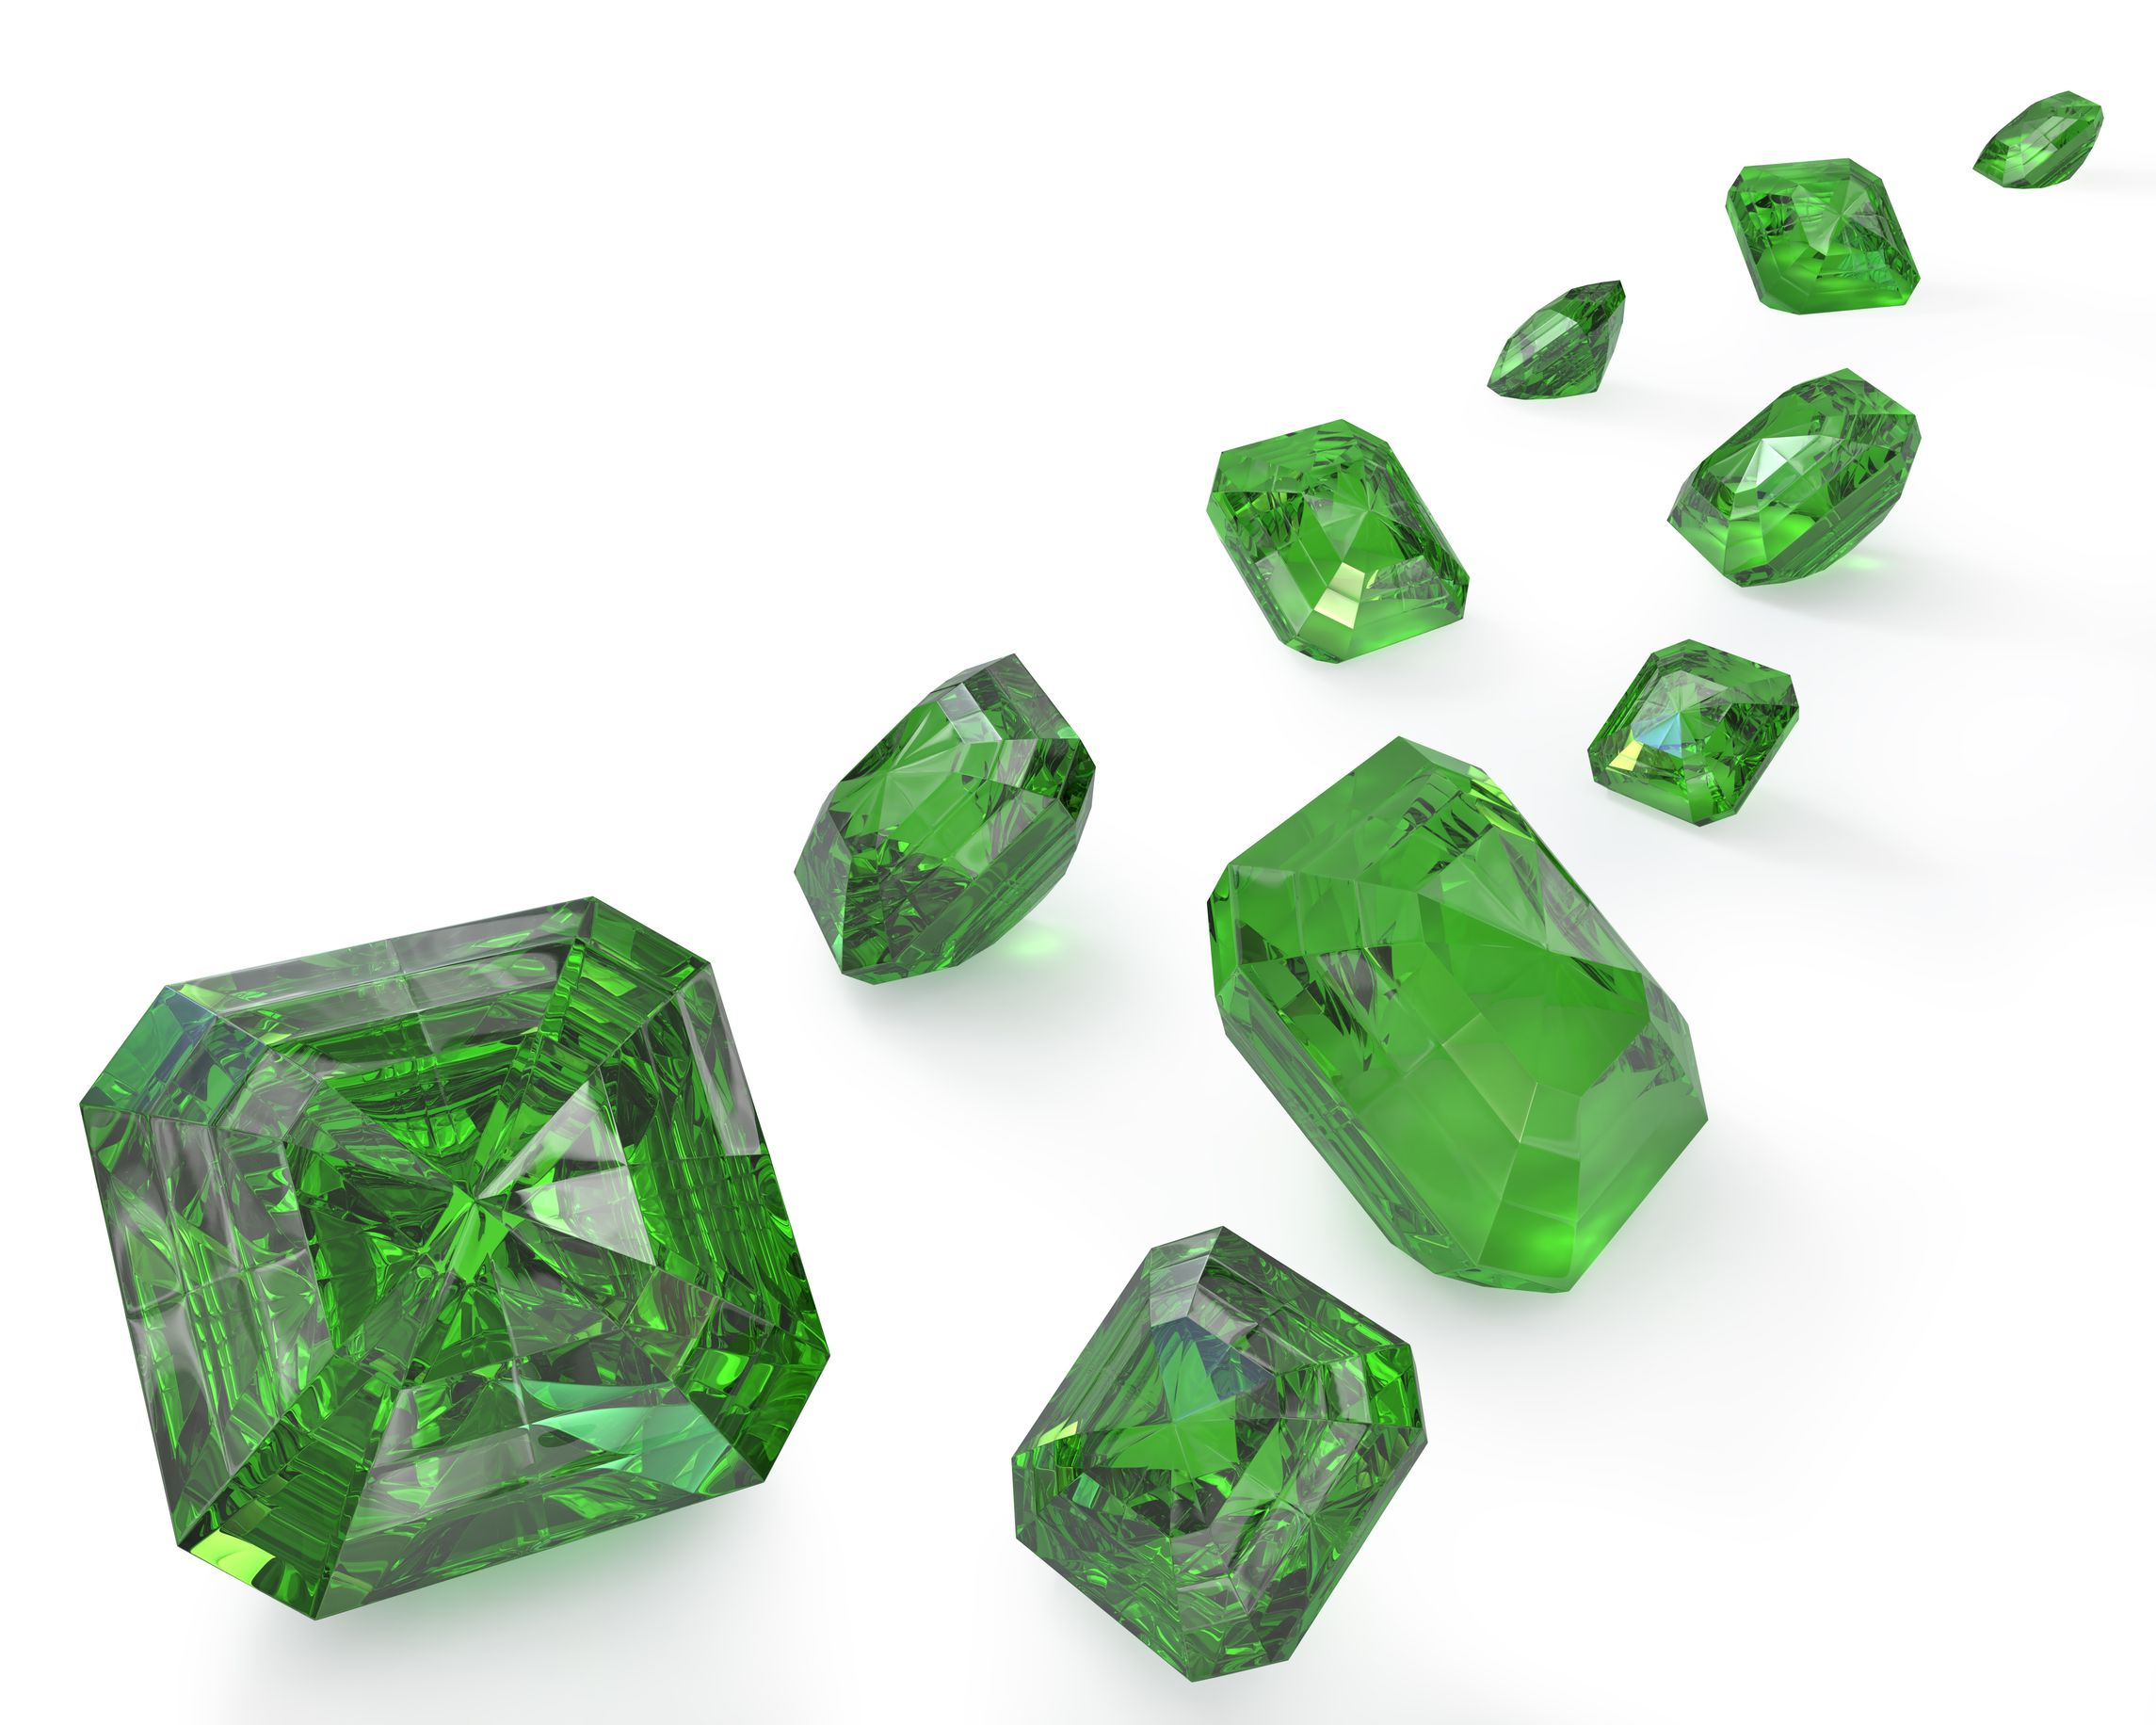 Catherine the Great's Emerald: Power, Strength, and Beauty